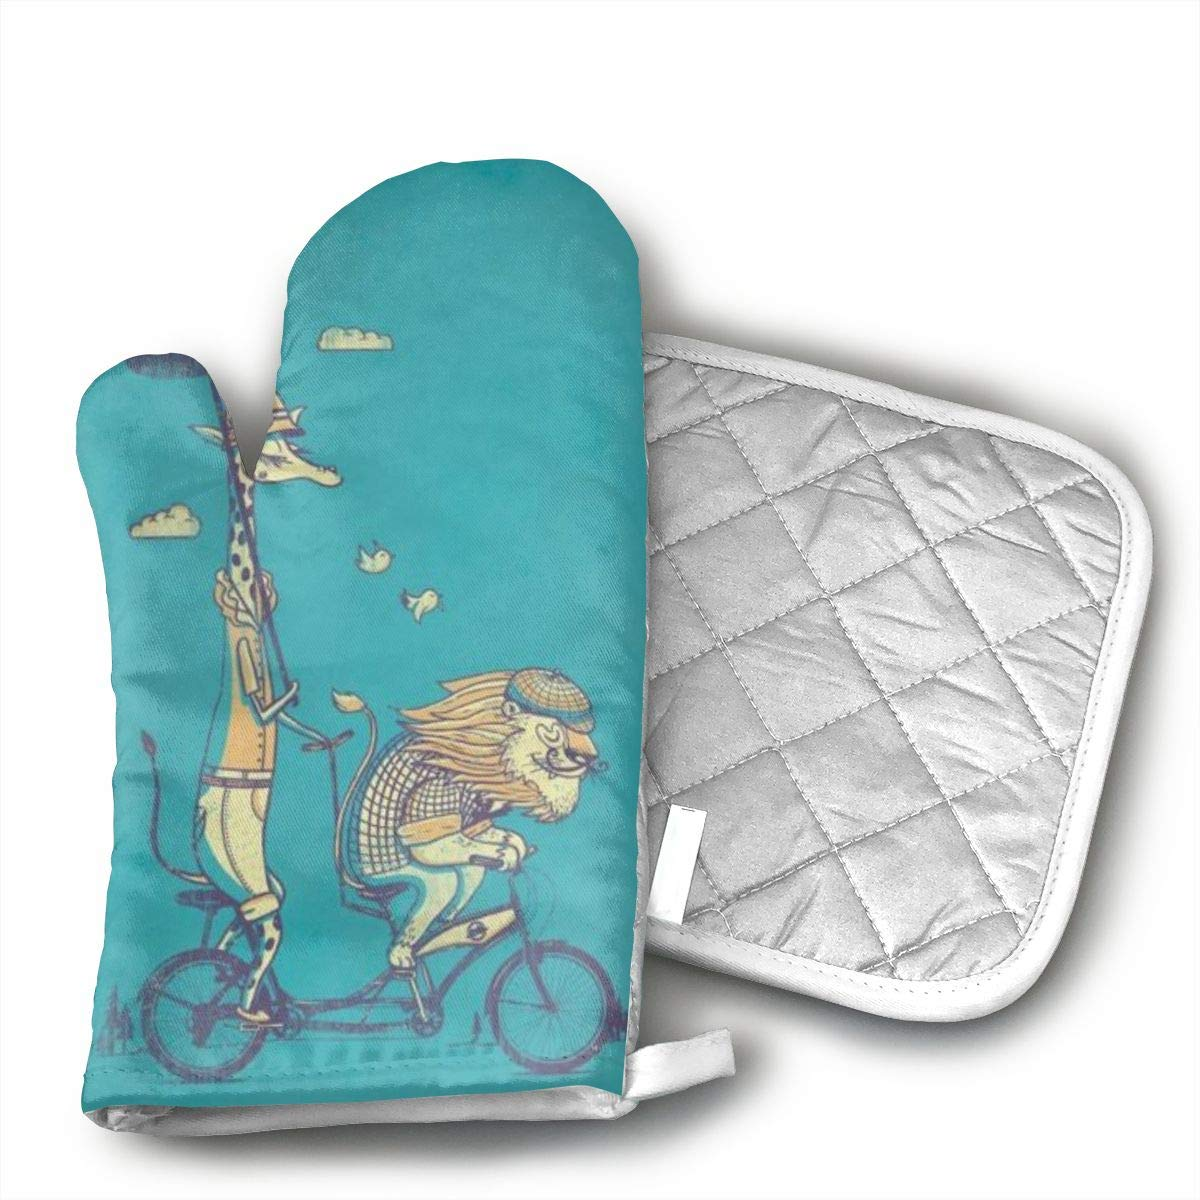 Funny Lion Giraffe Bicycle Oven Mitt and Pot Holder or Oven Gloves-100% Cotton, Heat Resistance, Superior Protection & Comfort